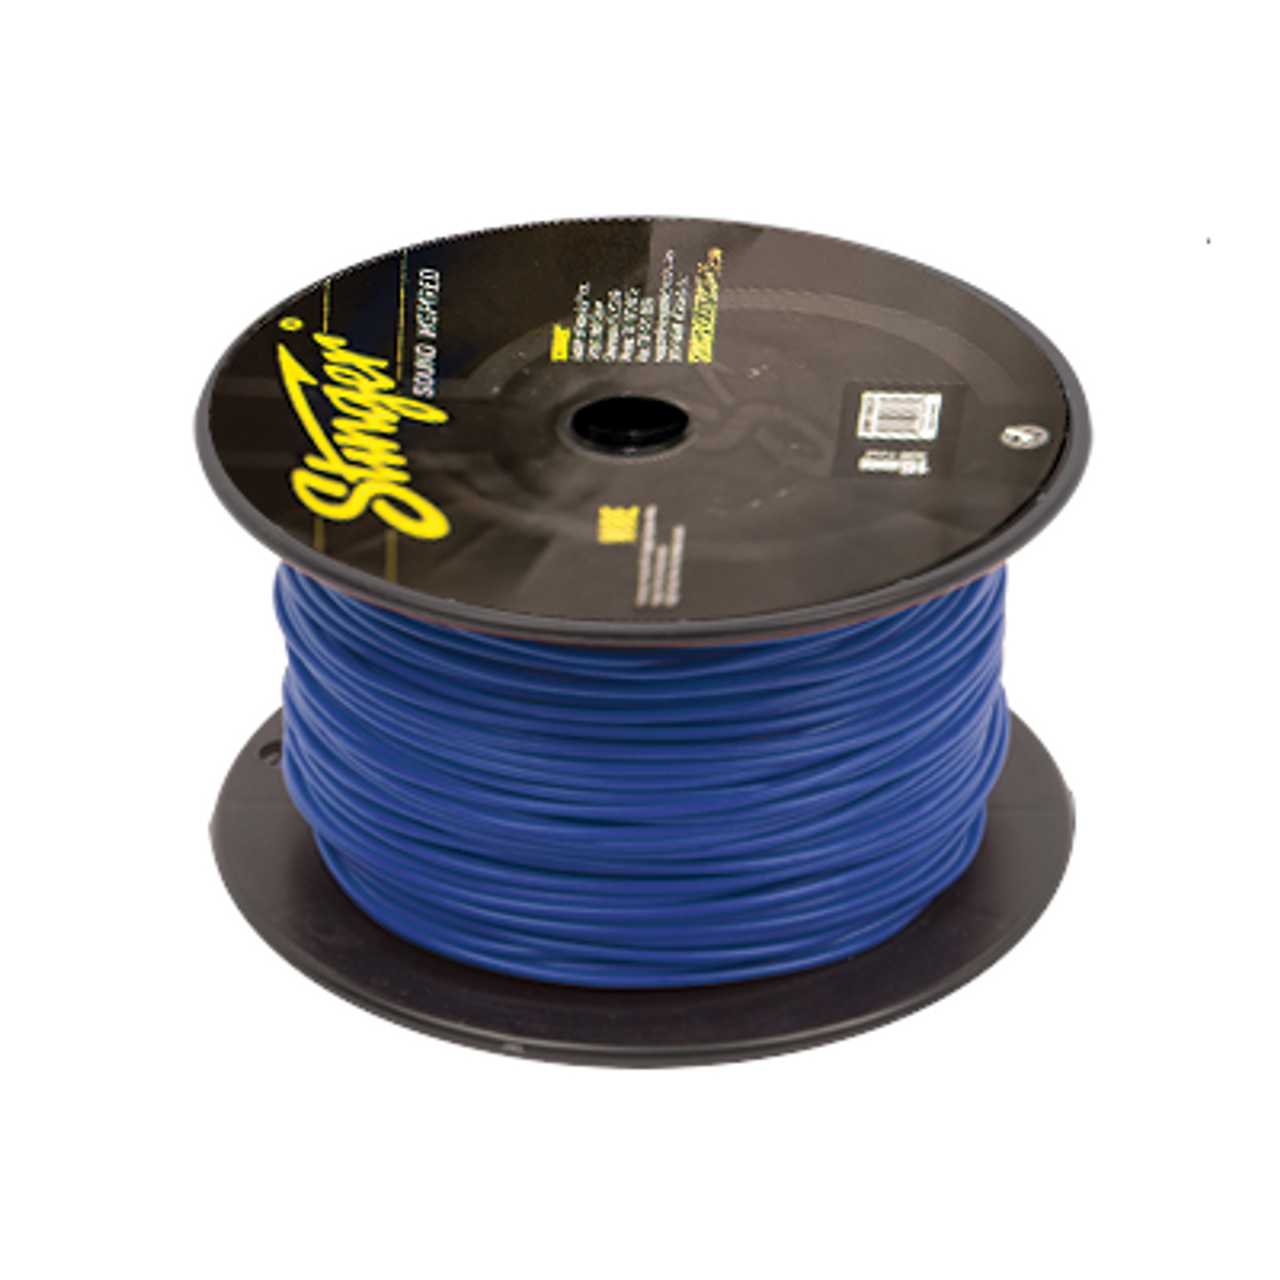 Stinger SPW318TU Audio Power Wire 18 Gauge Cable 500 ft Spool Roll Blue